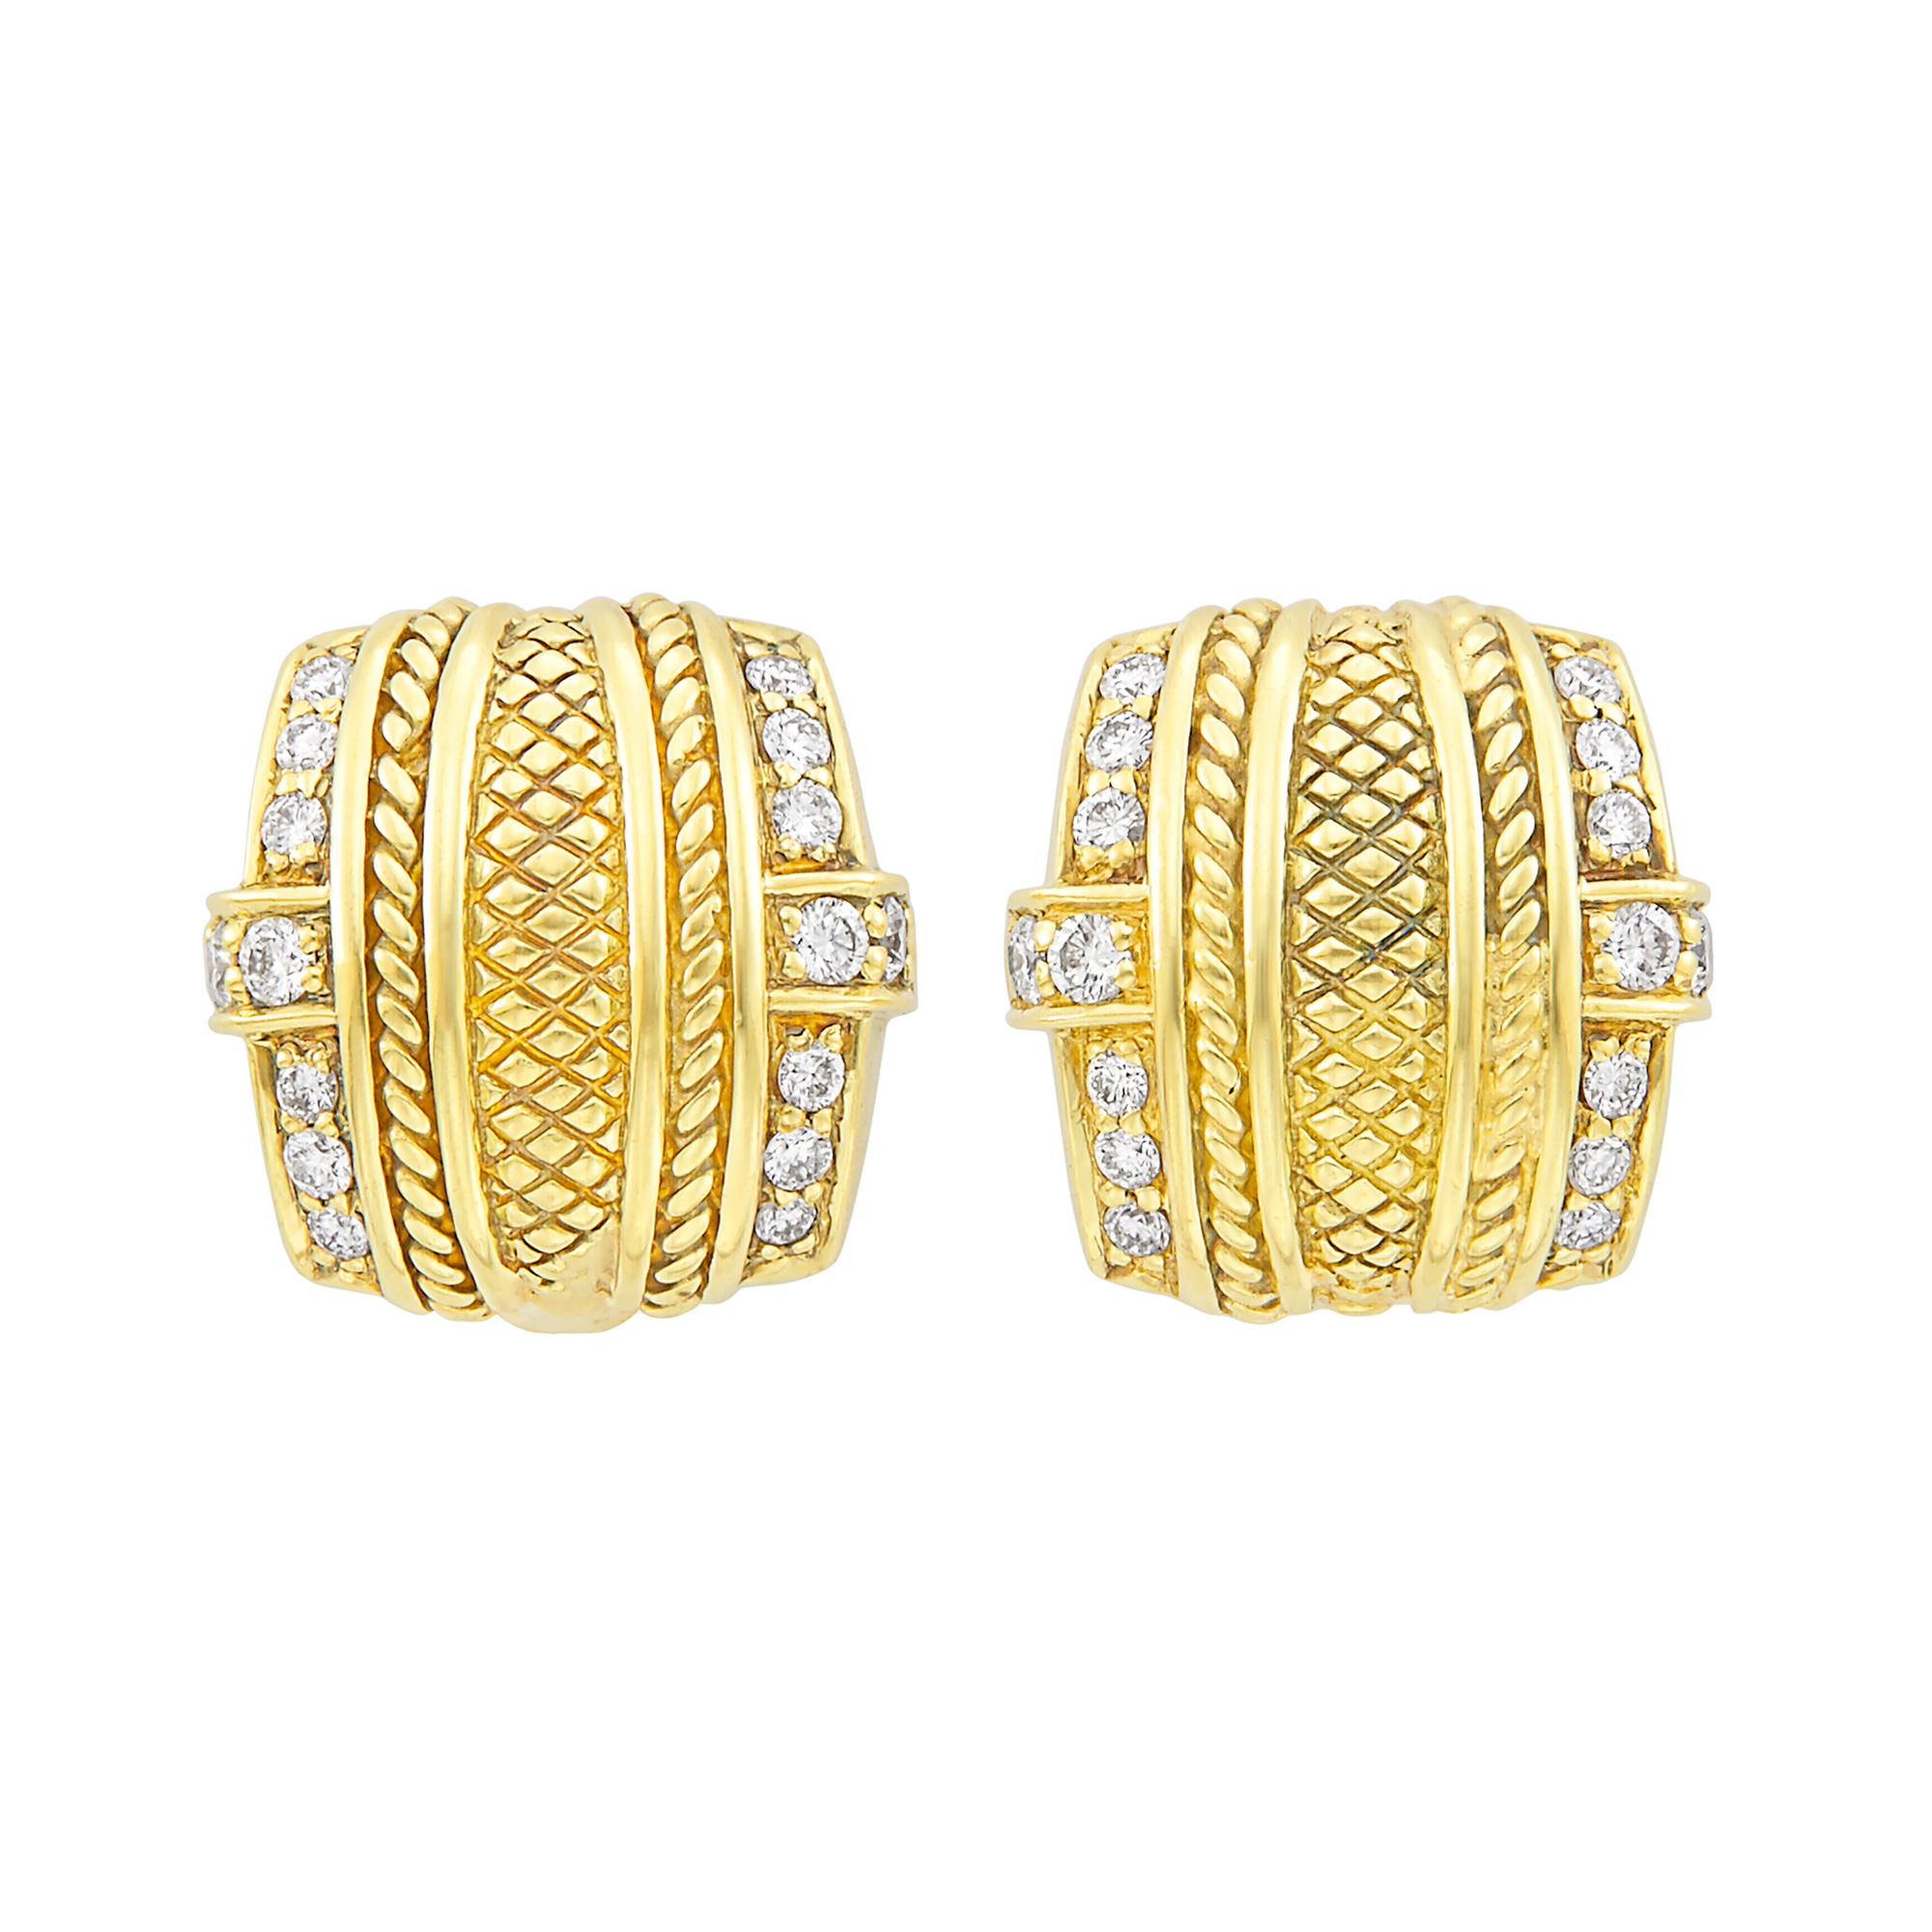 Lot image - Pair of Gold and Diamond Earrings, Judith Ripka